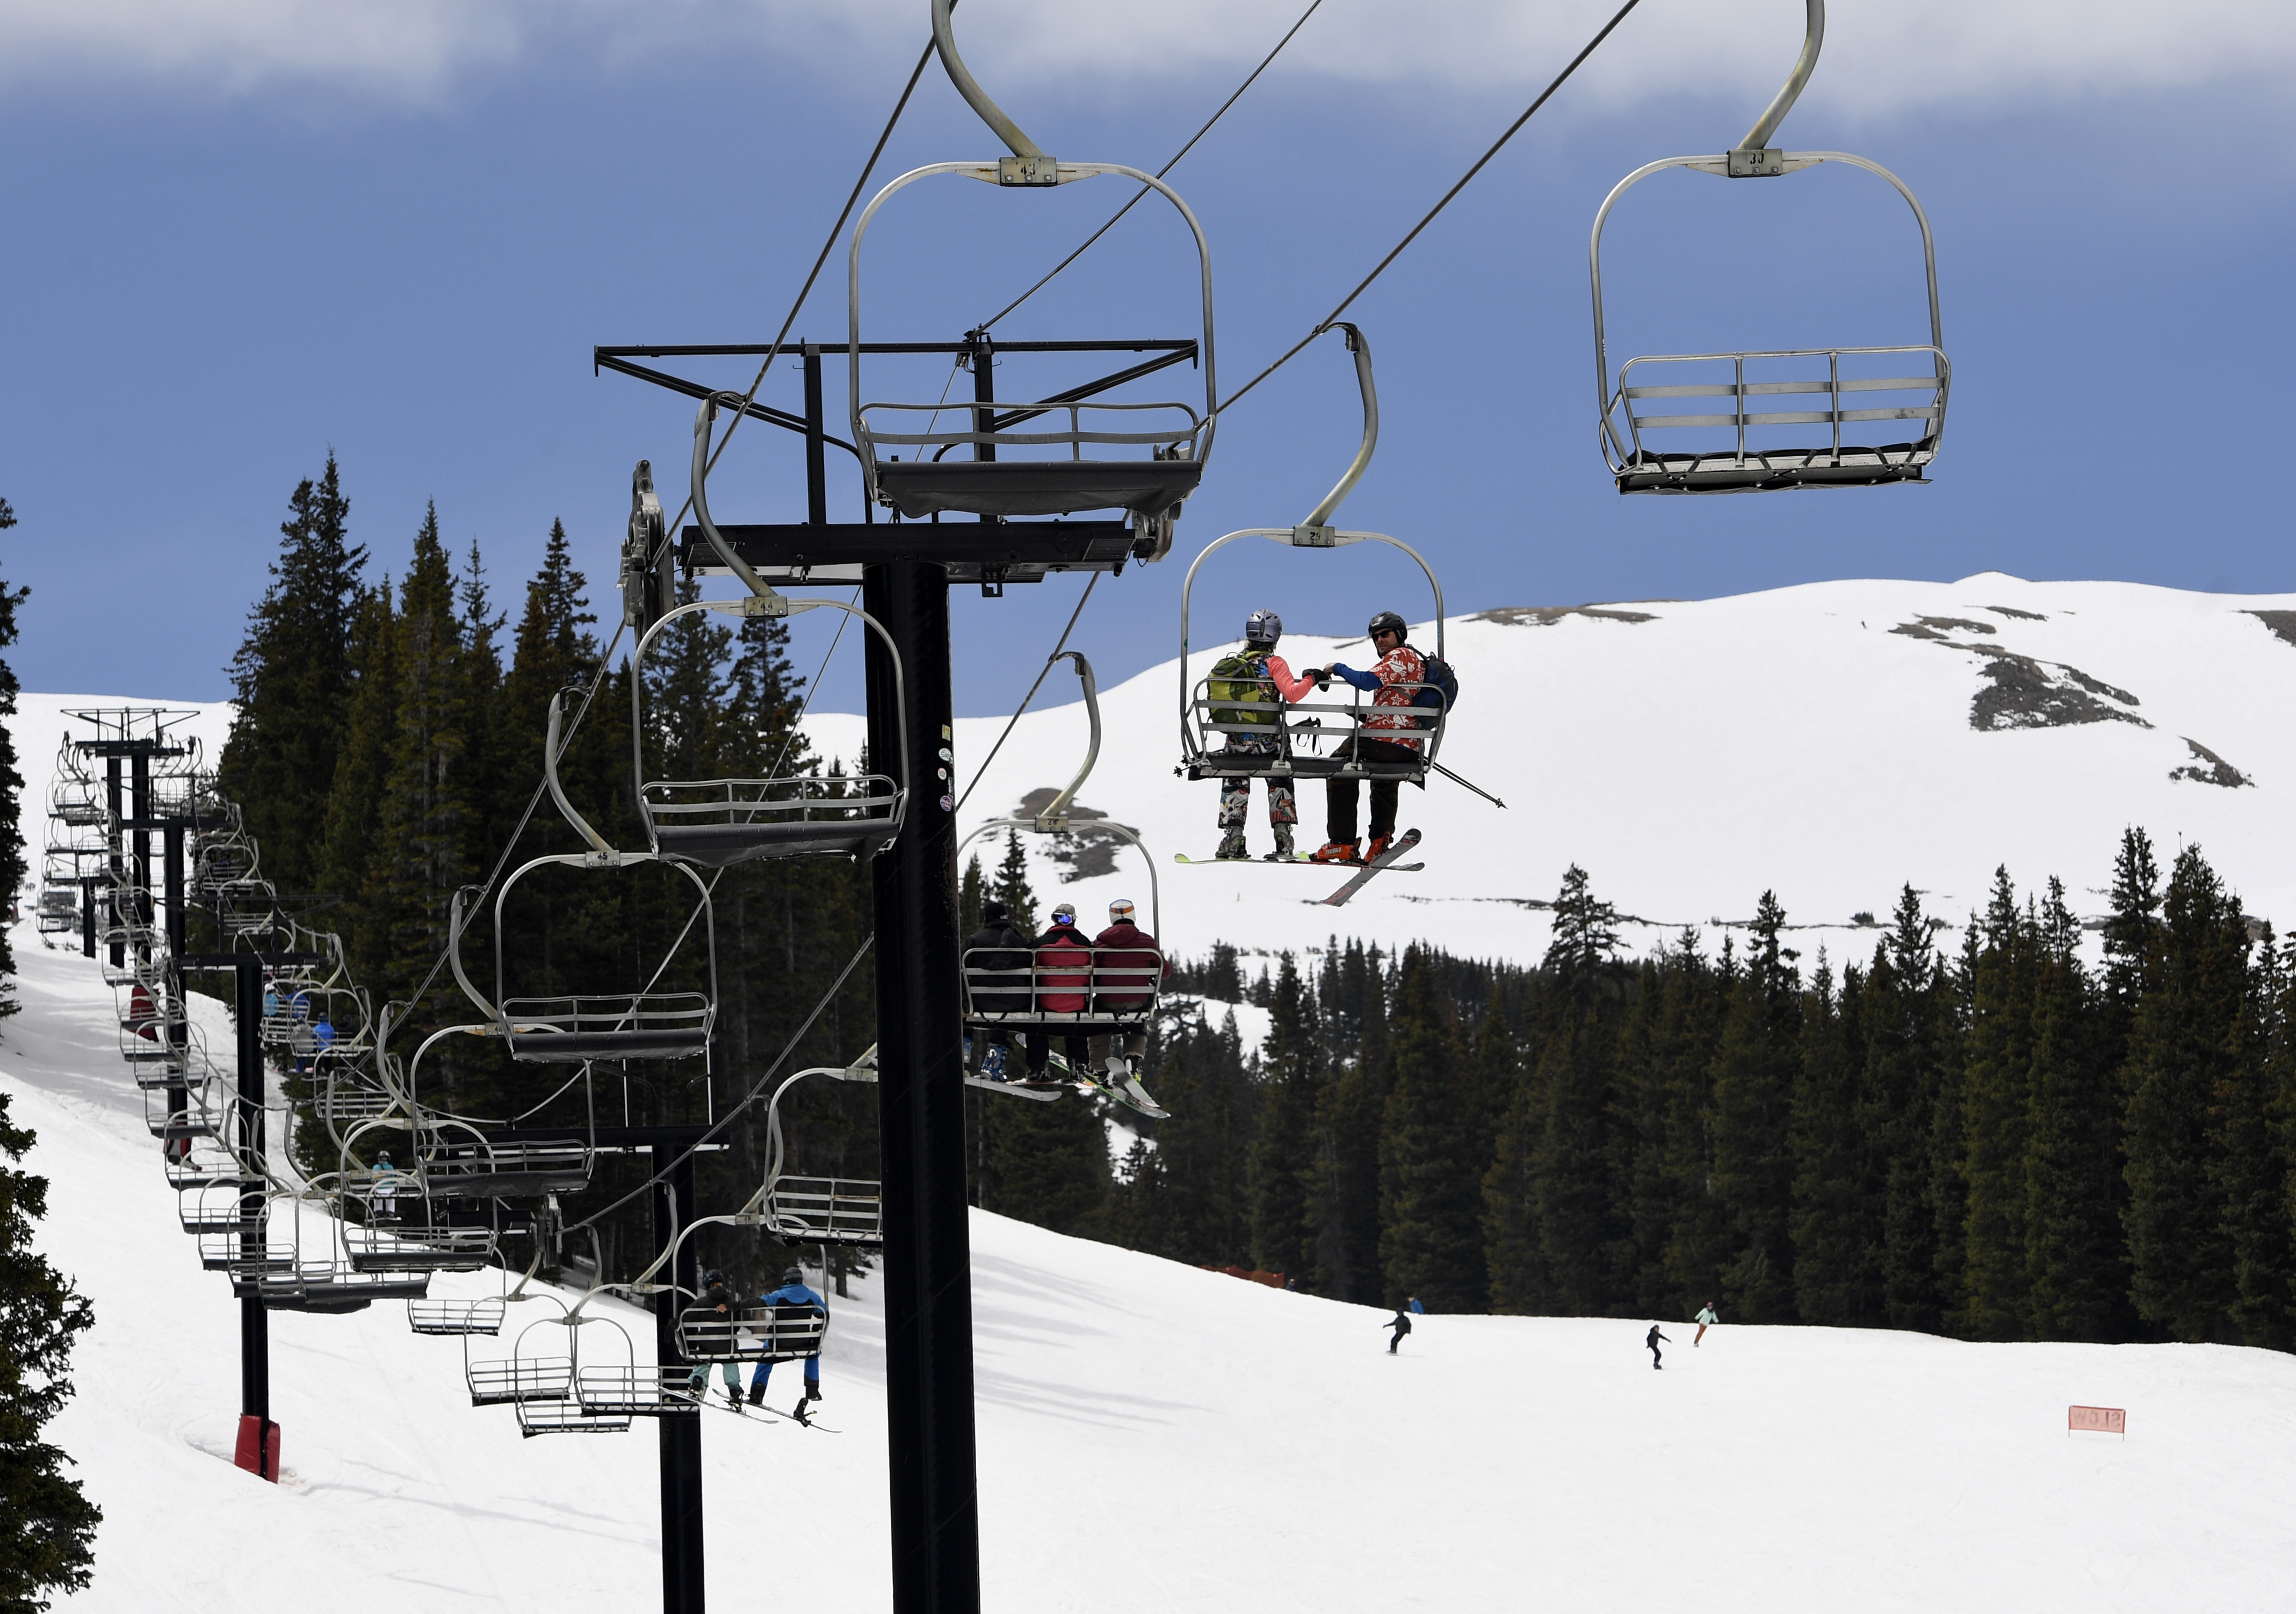 ski chair lift upholstered side chairs dining loveland area employee s death unrelated to chairlift state safety inspectors say